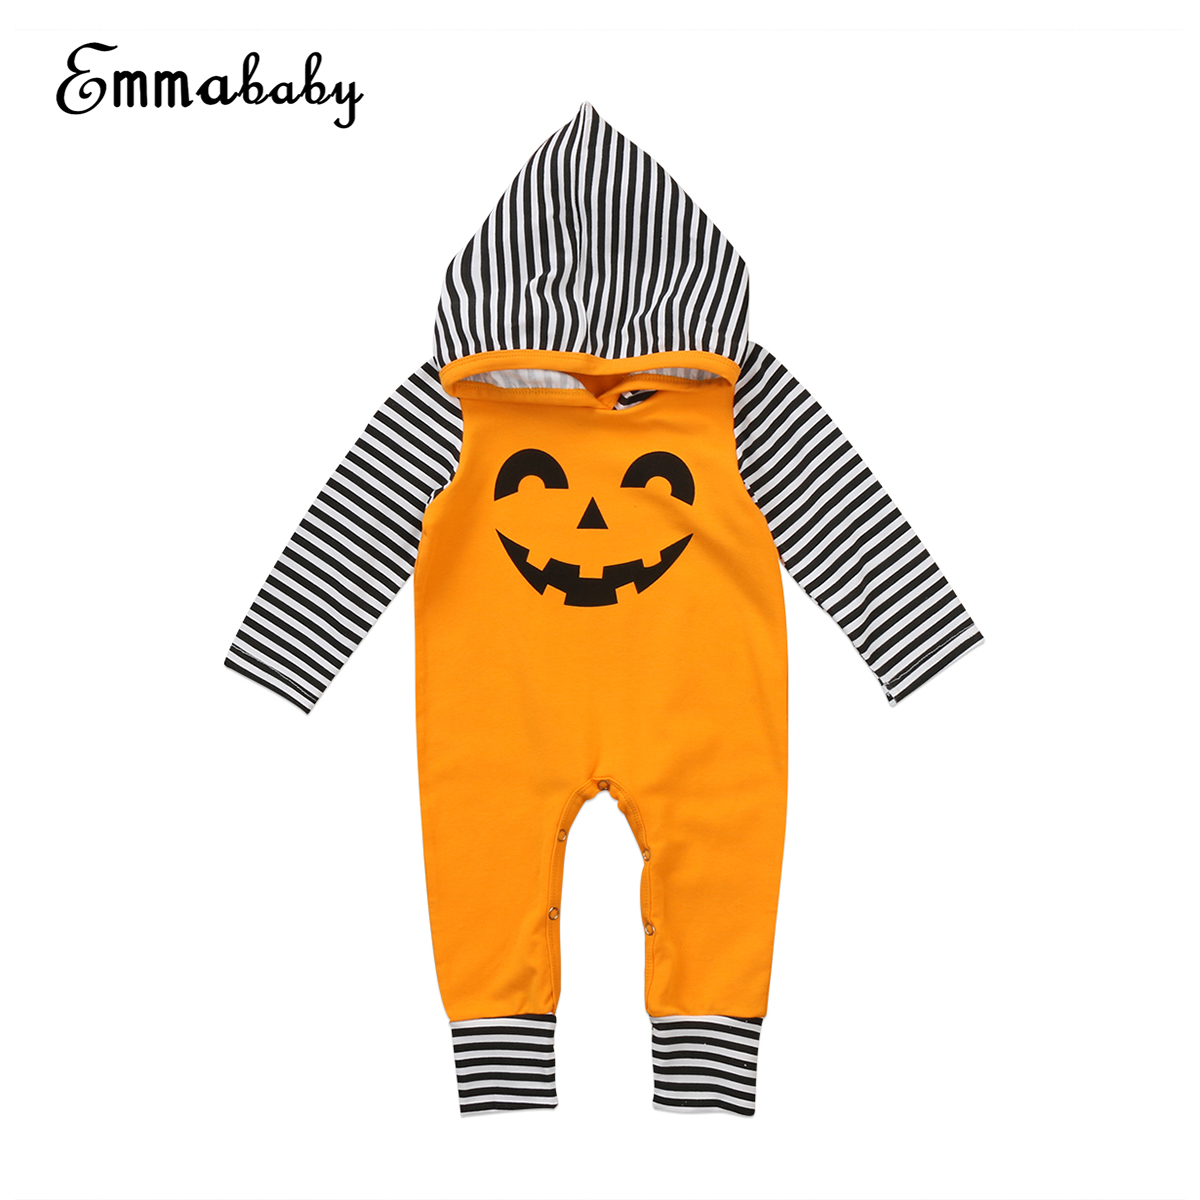 Lovely Toddler Baby Boy Girls Romper 2017 New Halloween Outfit Pumpkin Print Hoodies Romper Long Sleeve Warm Clothes